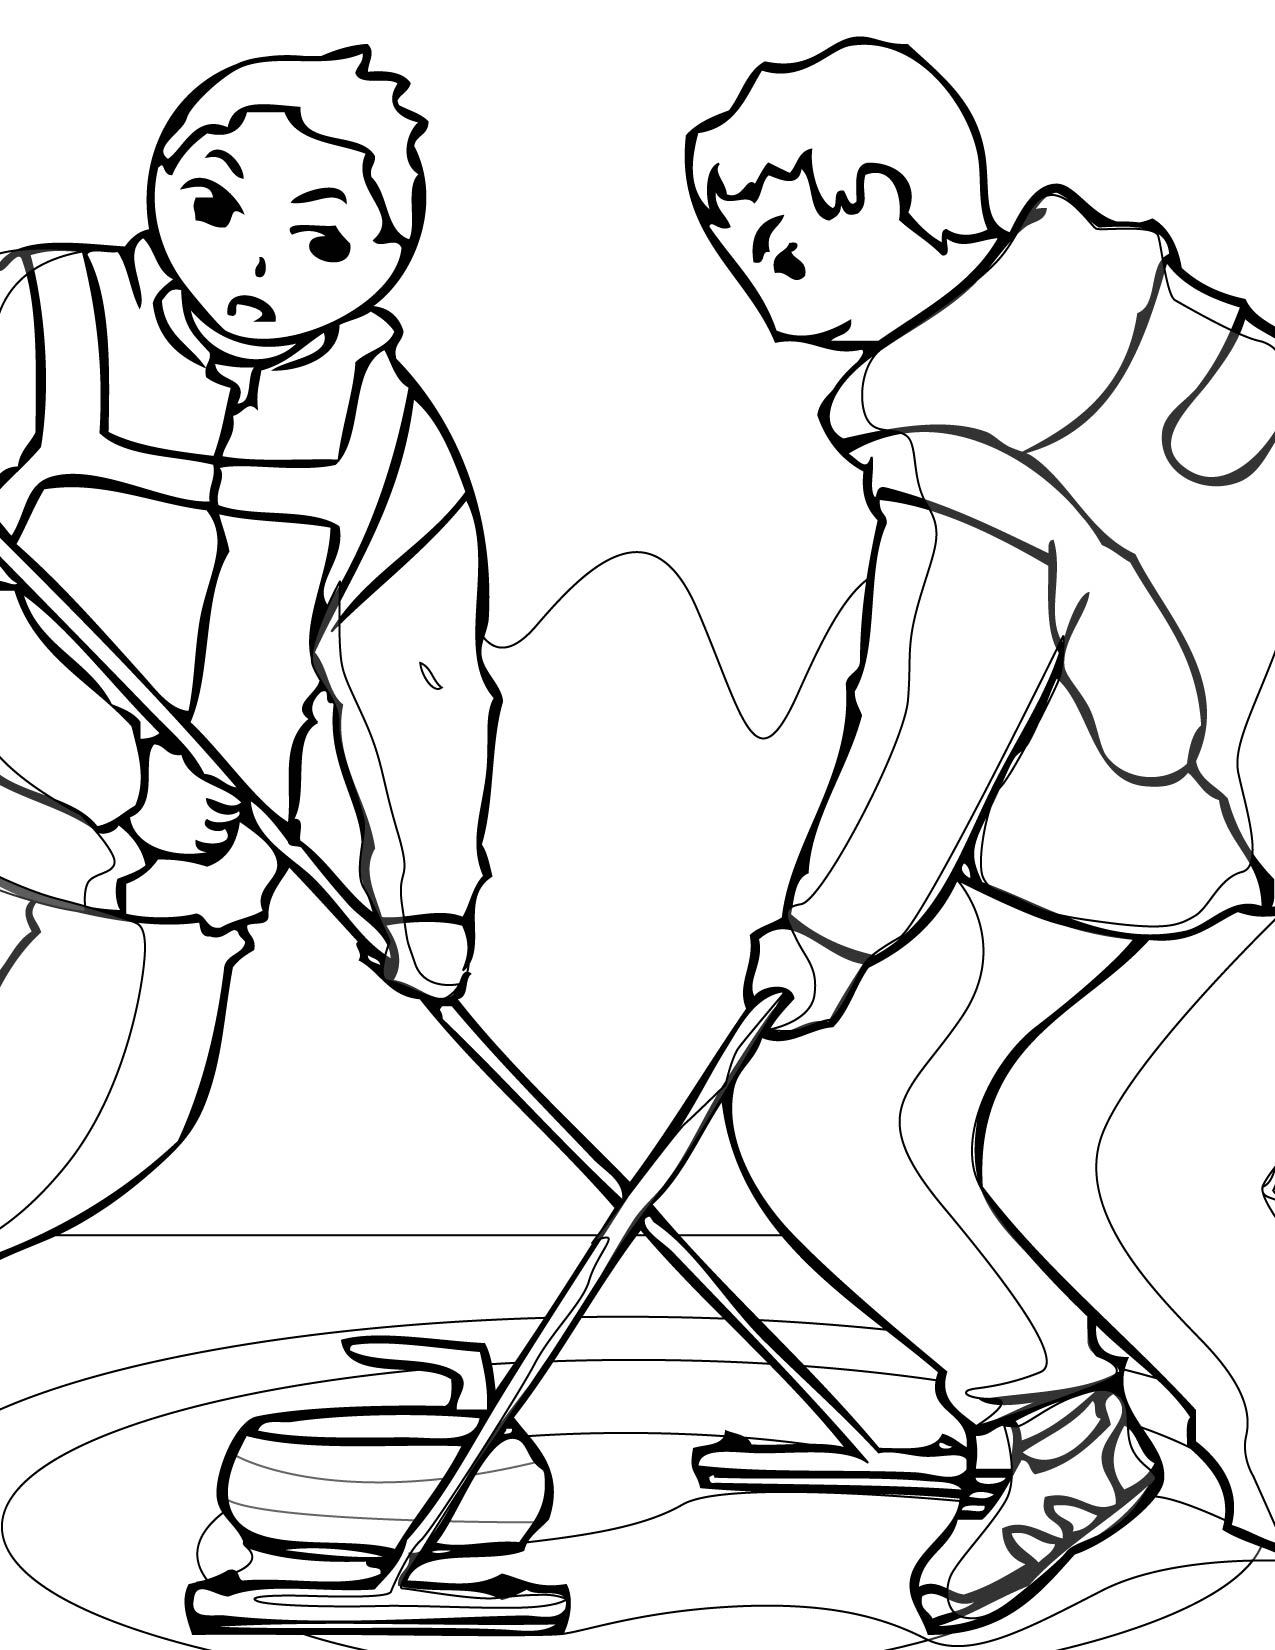 printable sports coloring pages - 23 winter season coloring pages print color craft